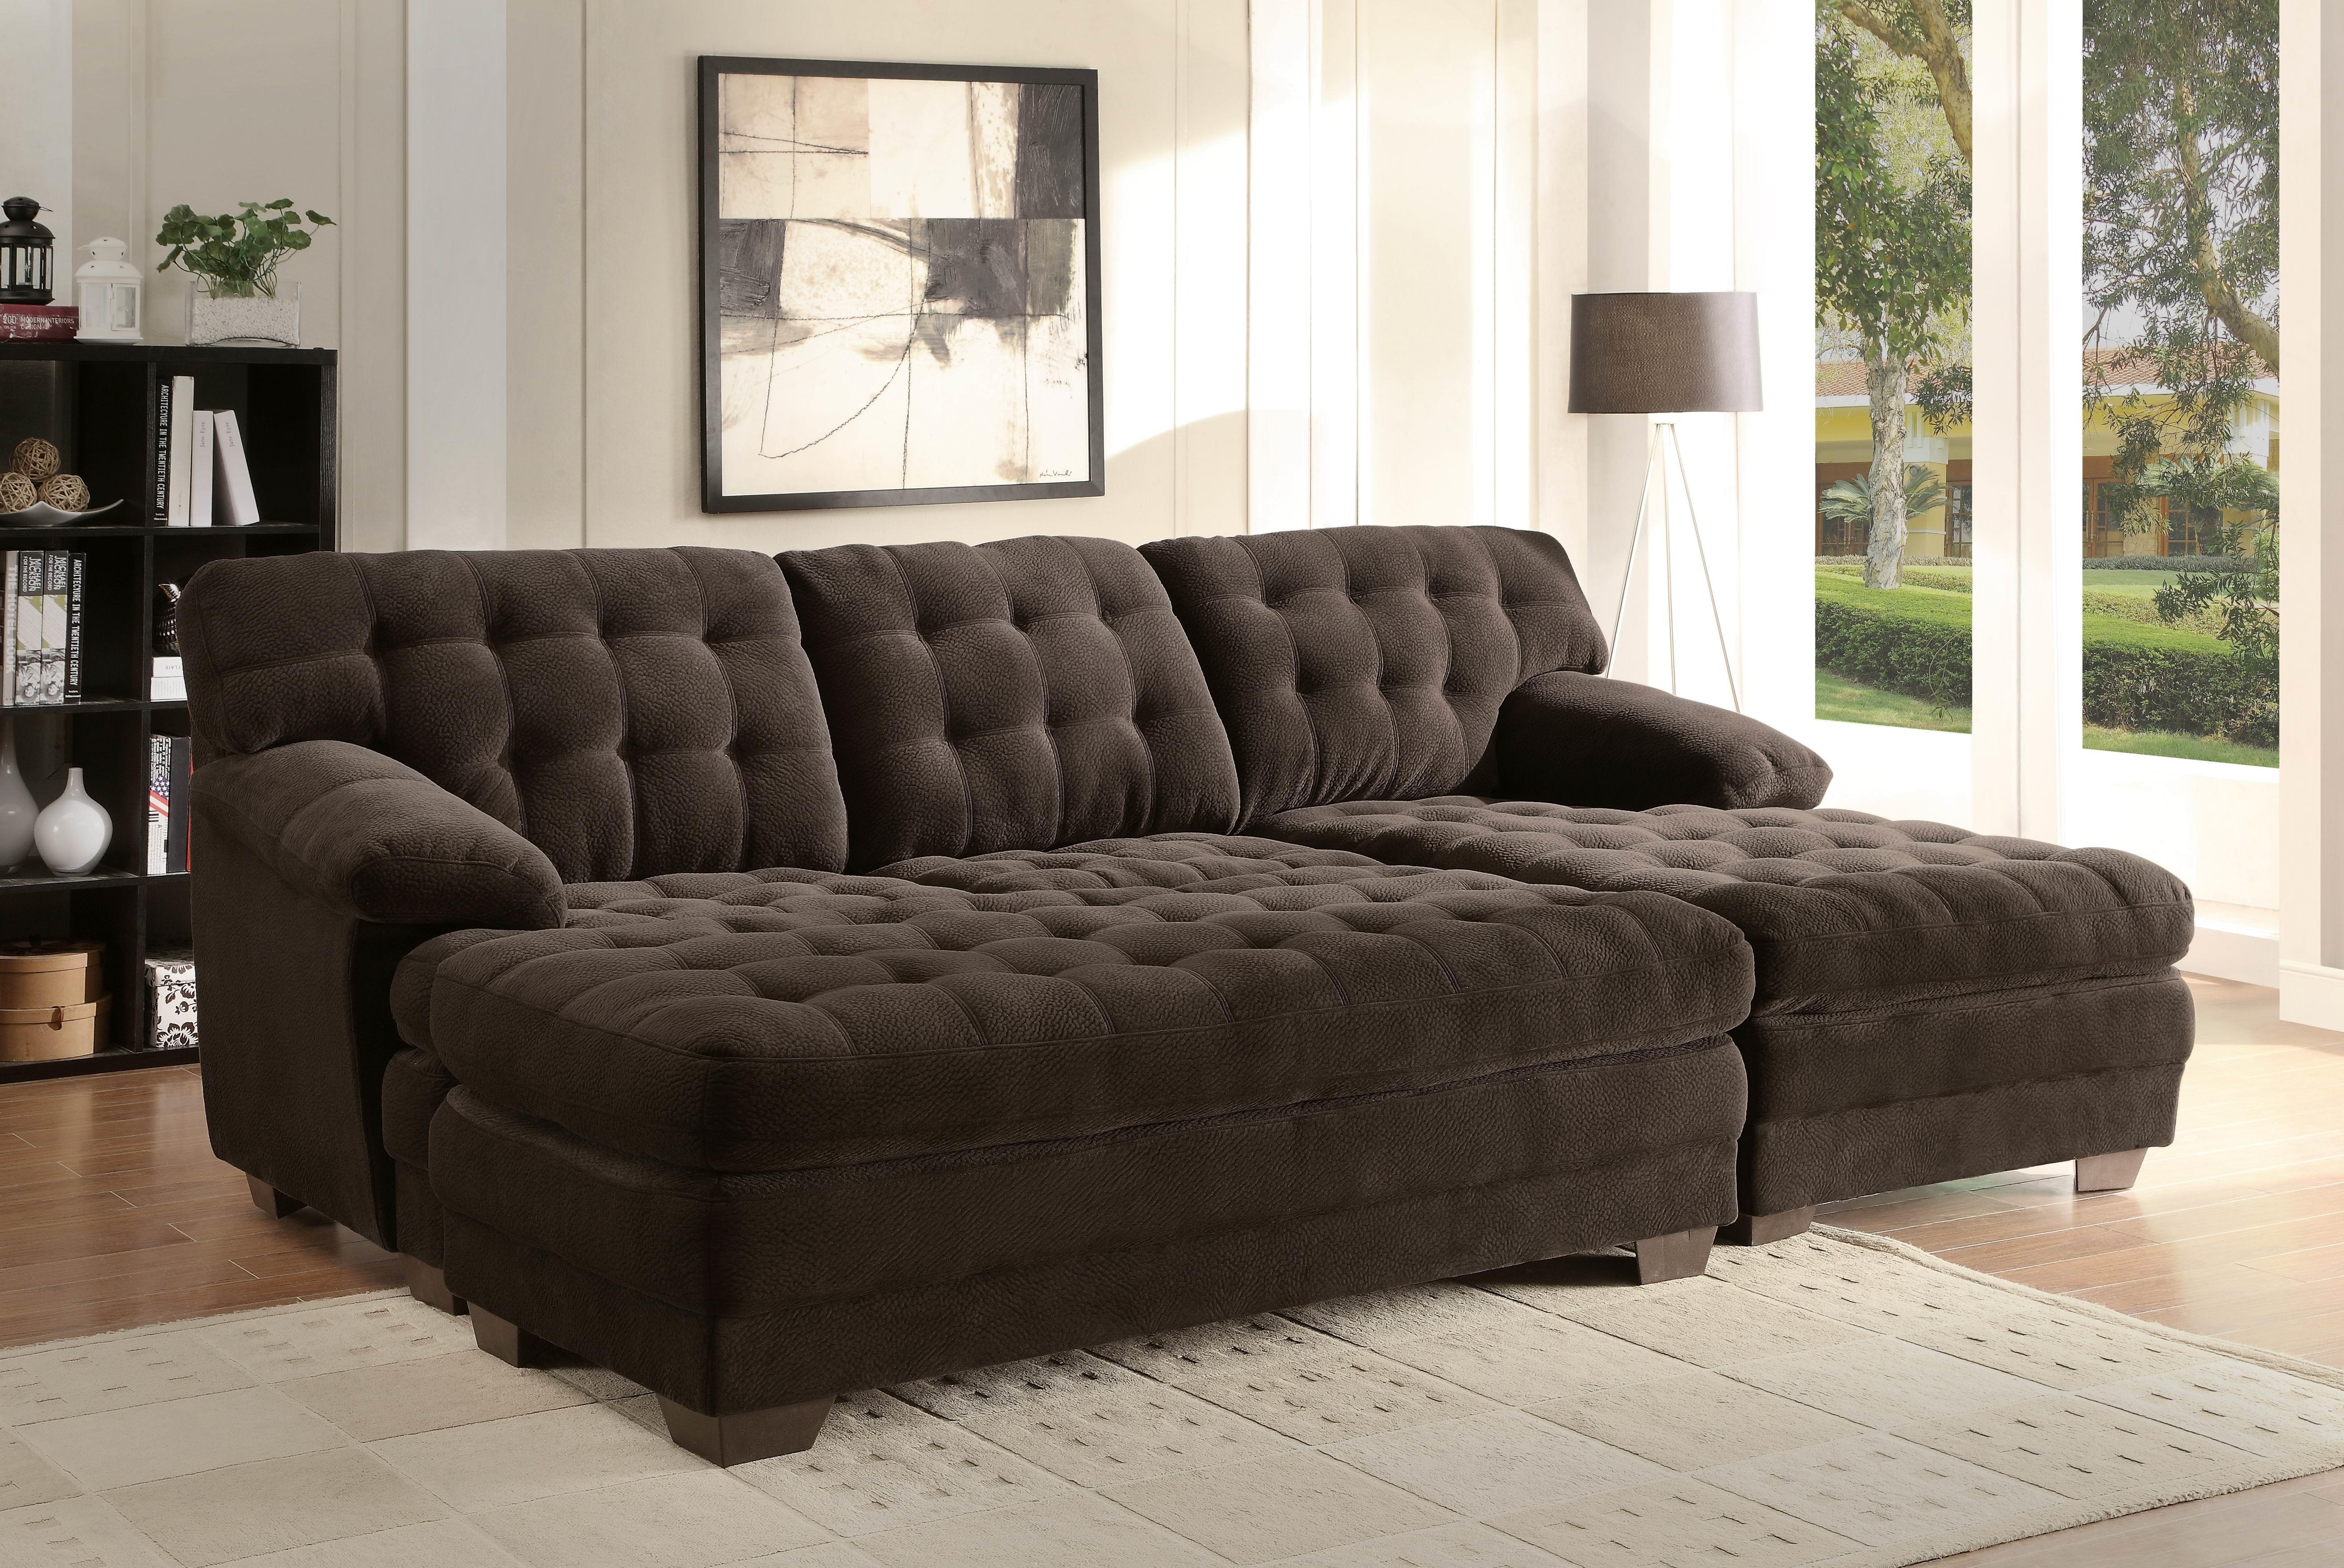 Sofa : Attractive Extra Large Sofa Extra Large Sofa Extra Large Pertaining To Extra Large Sofas (Image 10 of 10)